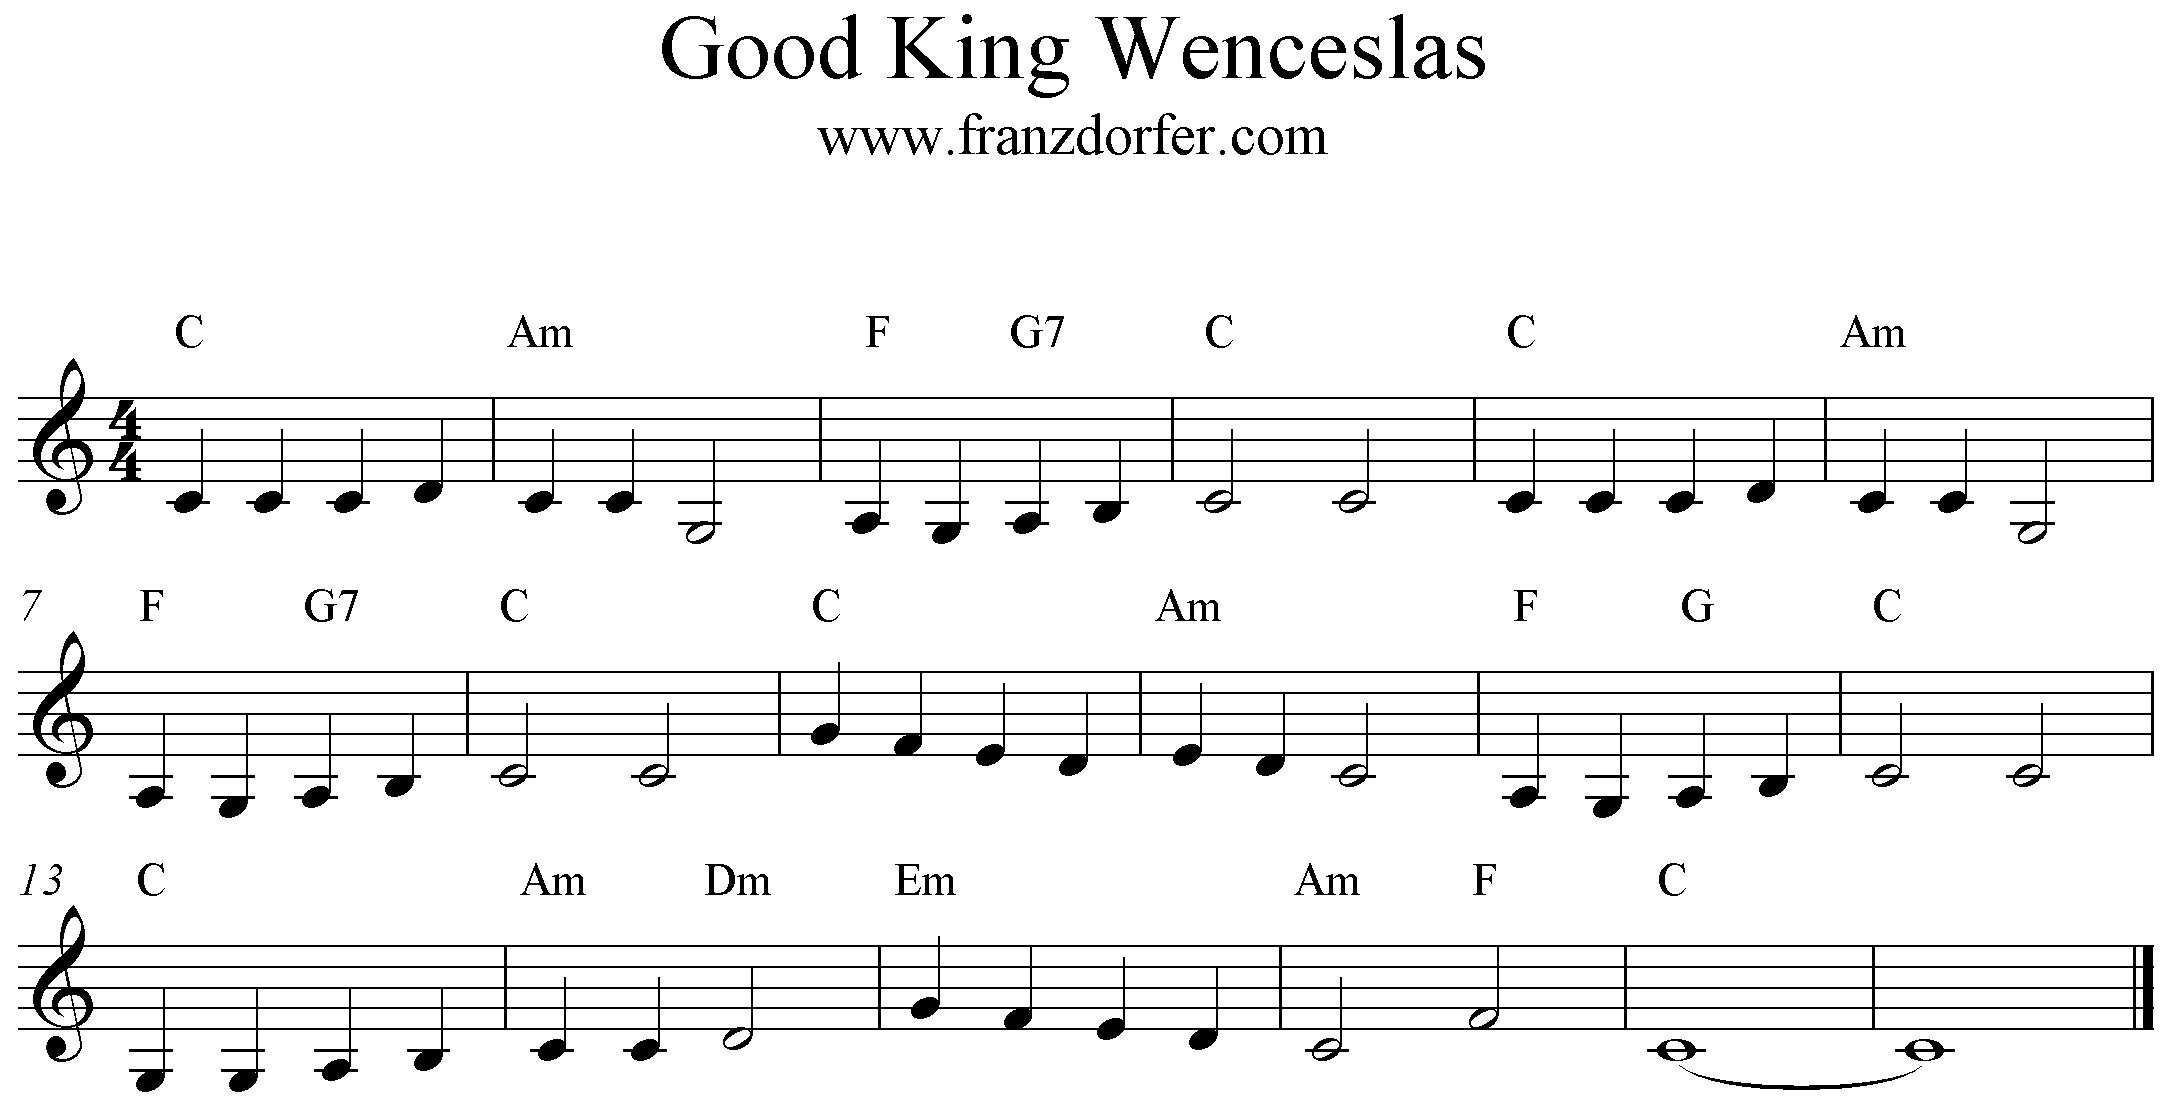 C-Major, Sheetmusic, Good King Wenceslas